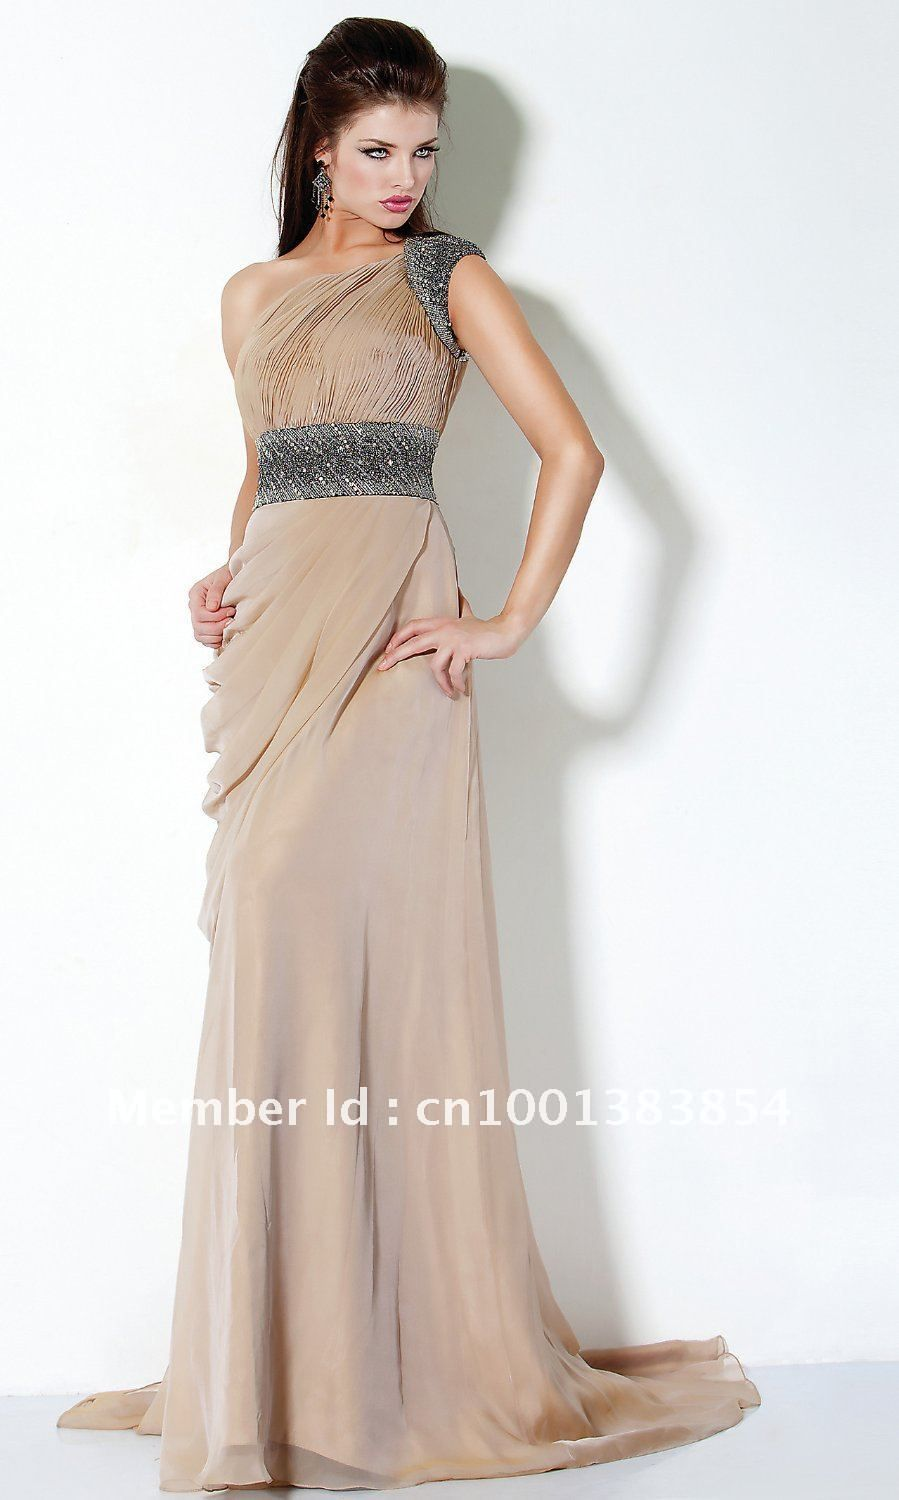 Mother of the bride dresses for outdoor country wedding  COCKTAIL DRESSES FOR WEDDINGS  Handese Fermanda  Cocktail Dresses